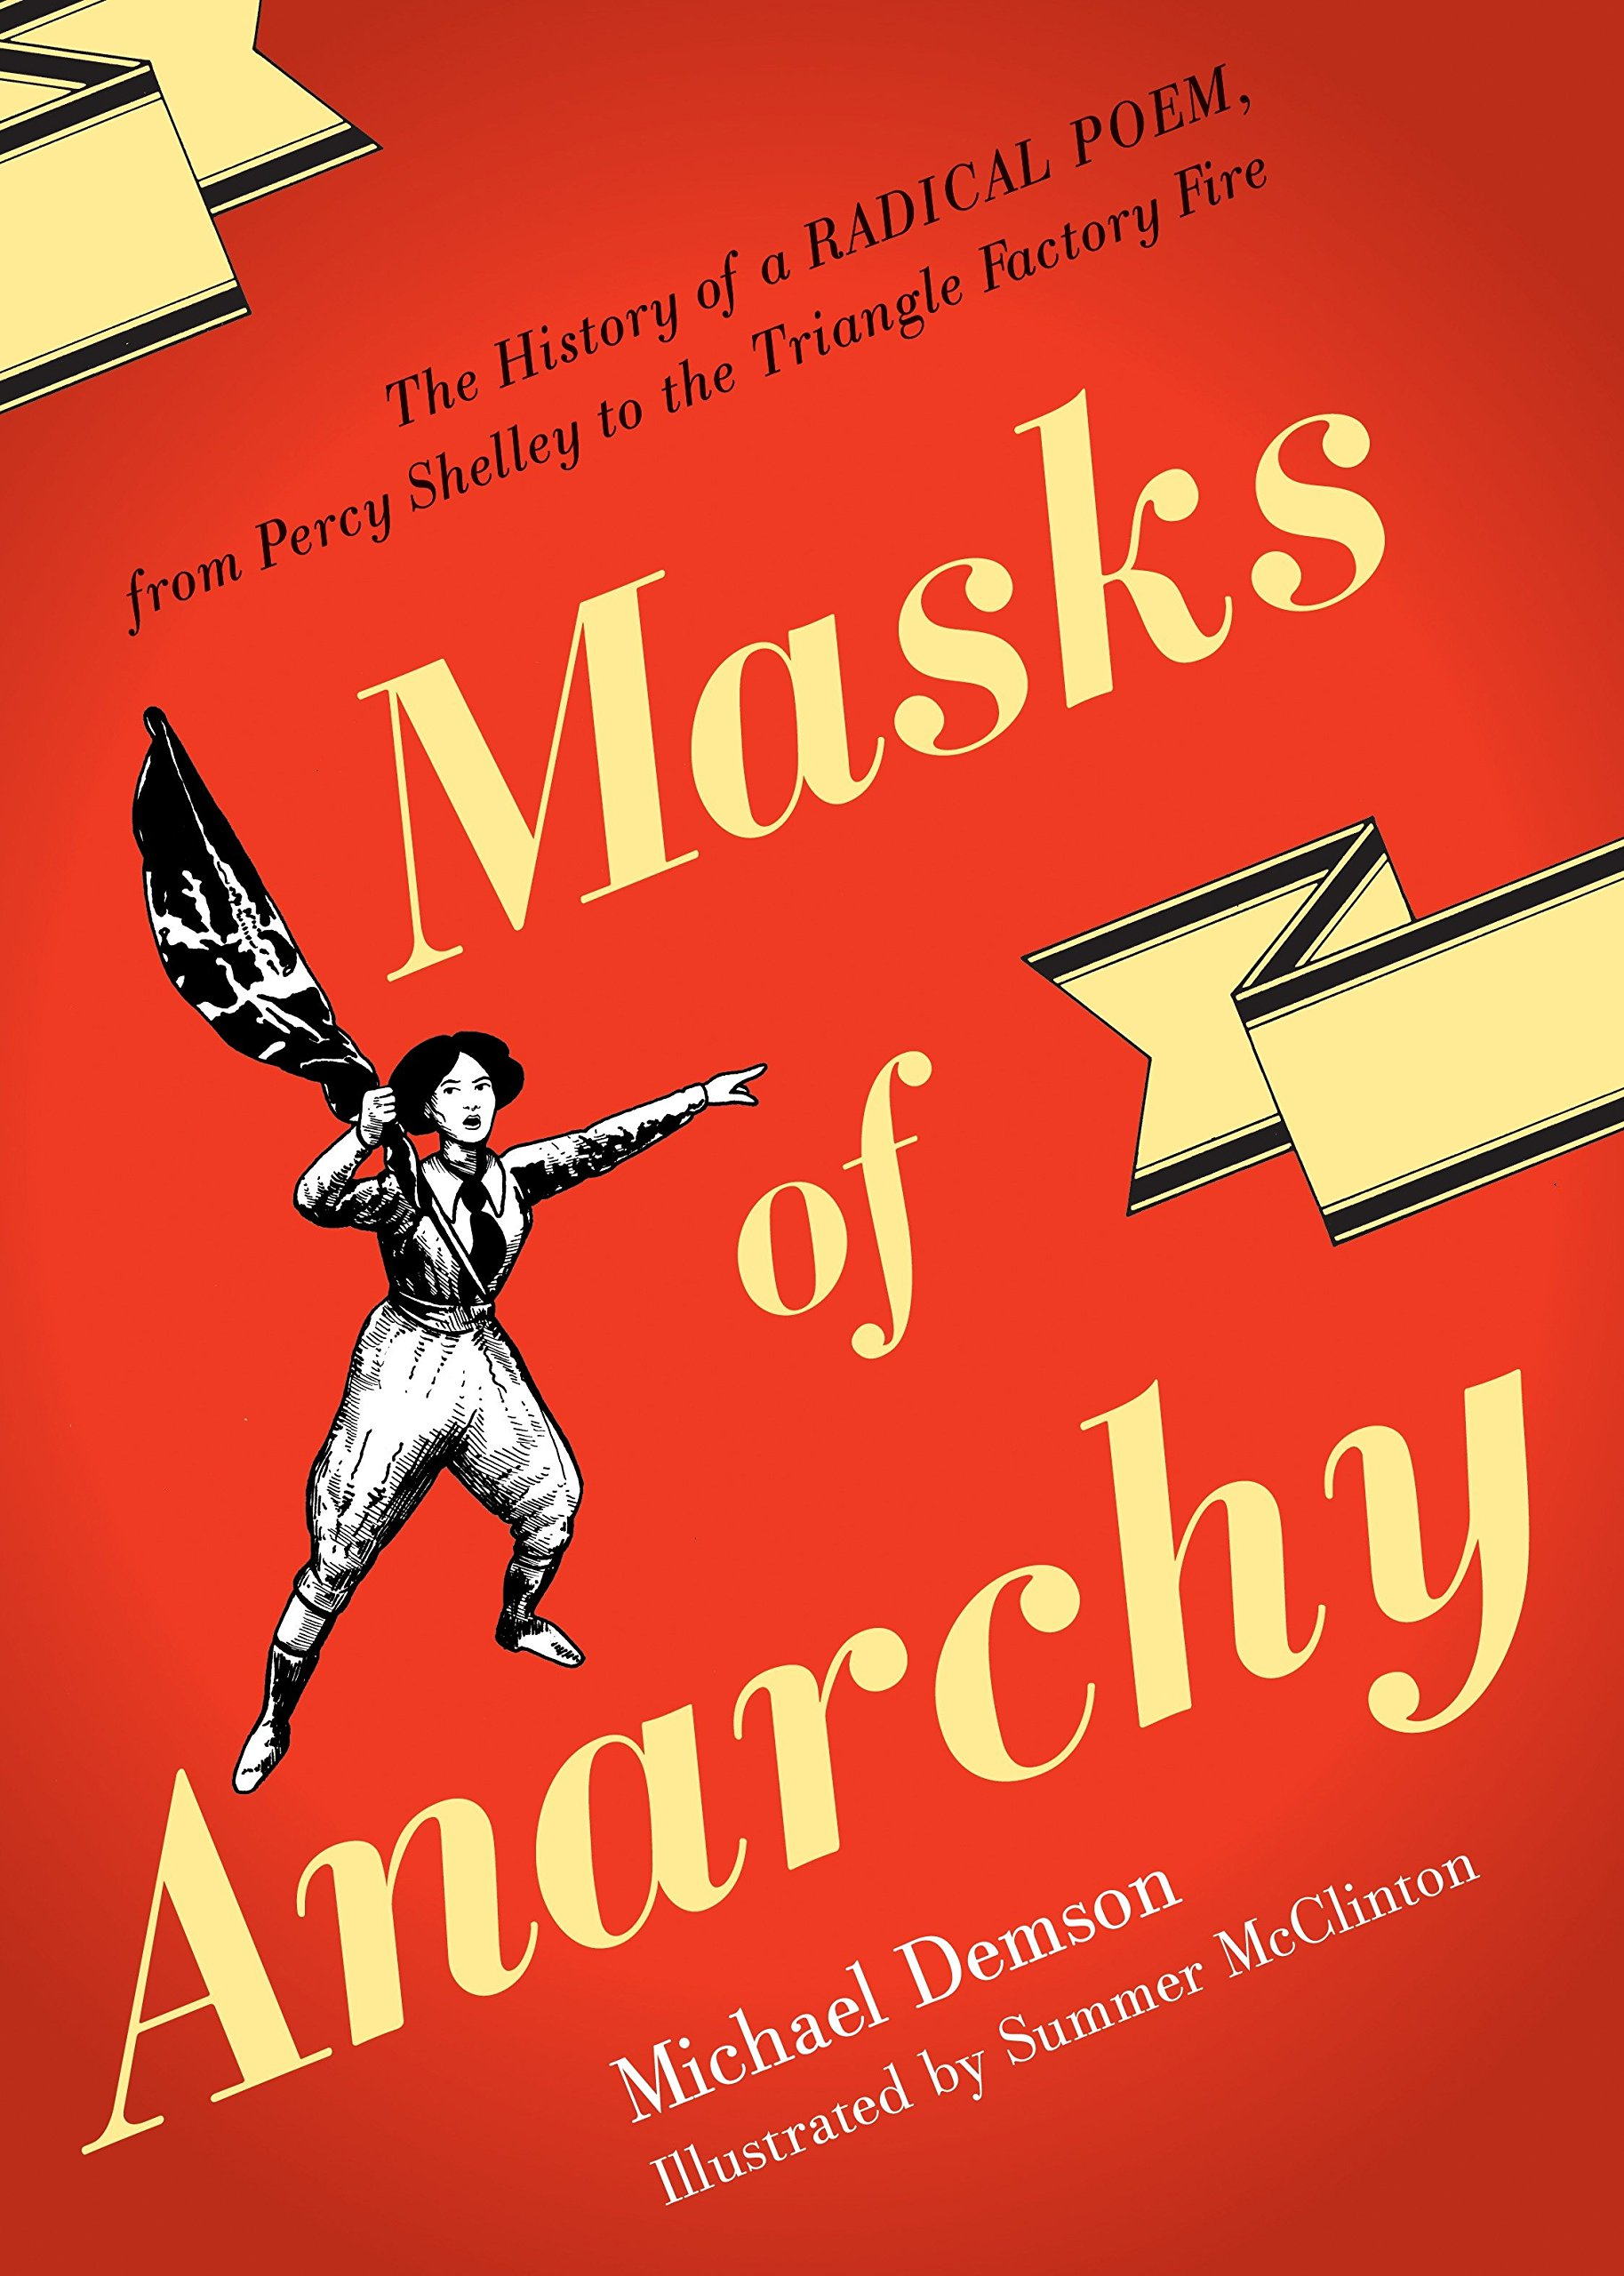 Download Masks Of Anarchy: The History Of A Radical Poem, From Percy Shelley To The Triangle Factory Fire pdf